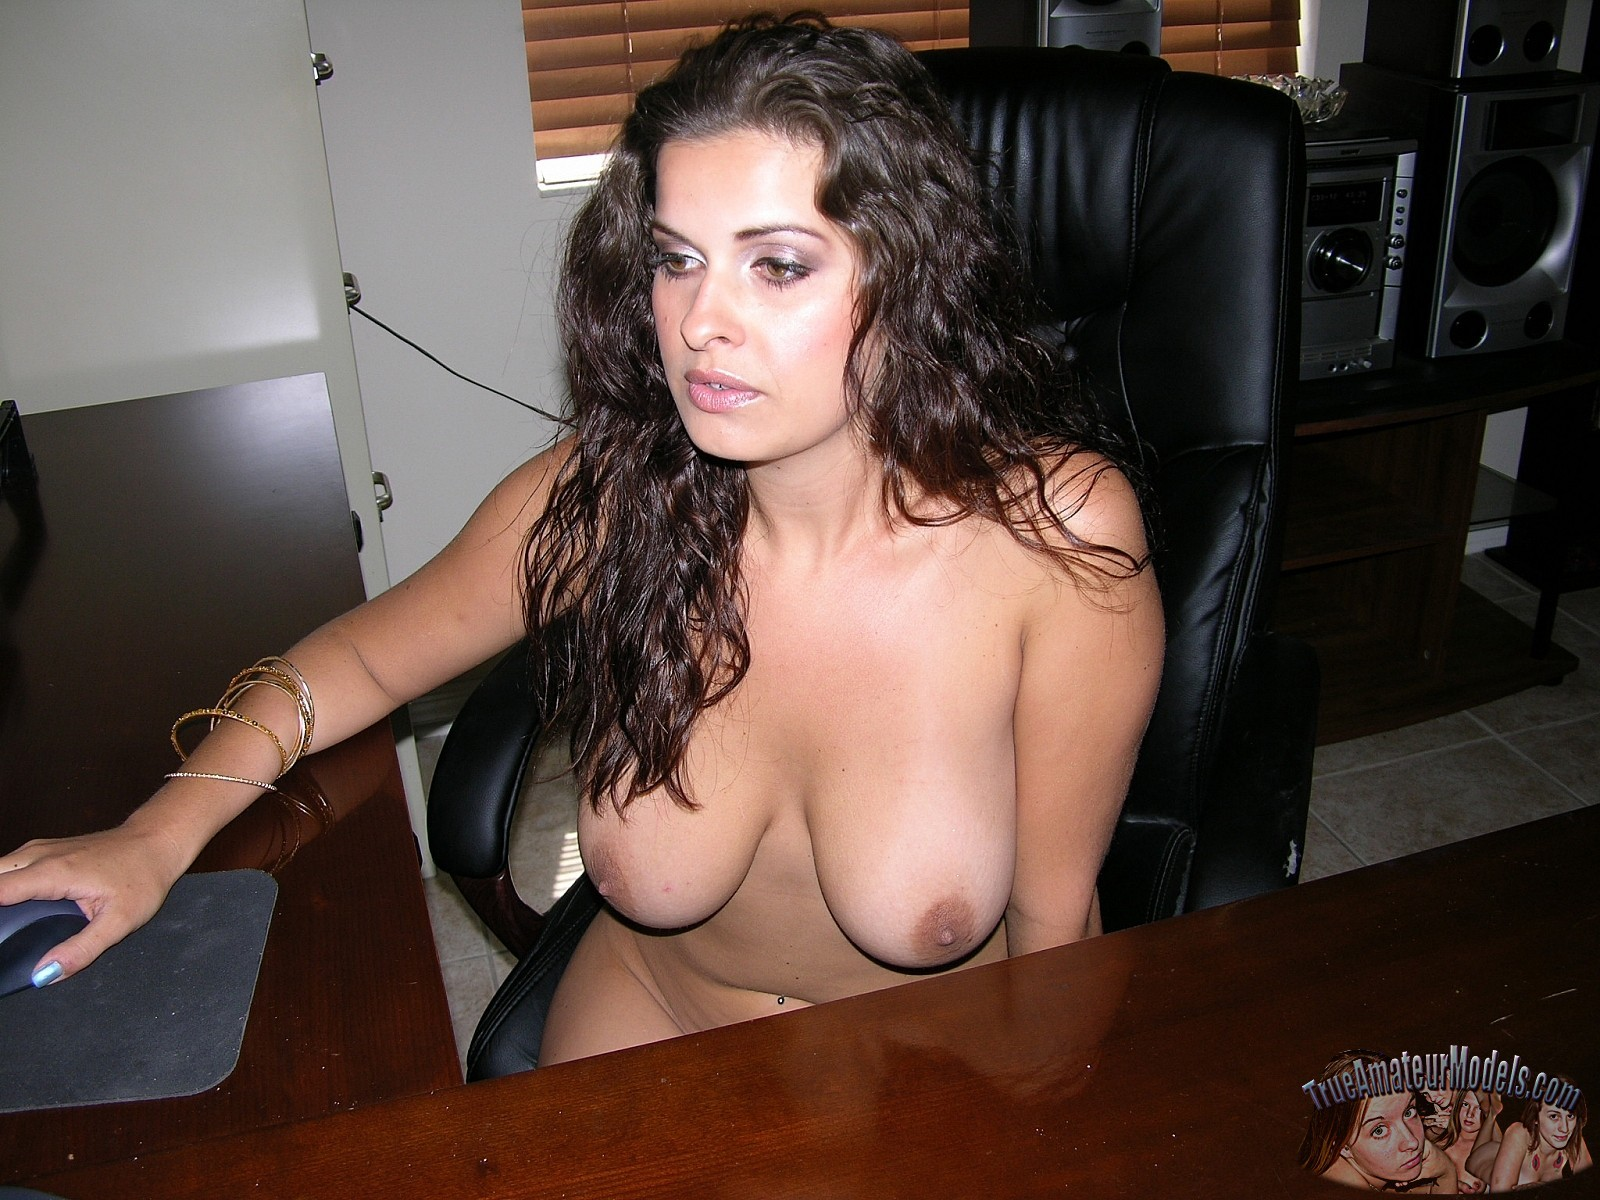 Hot babe with big natural tits modeling nude & spreading her ass